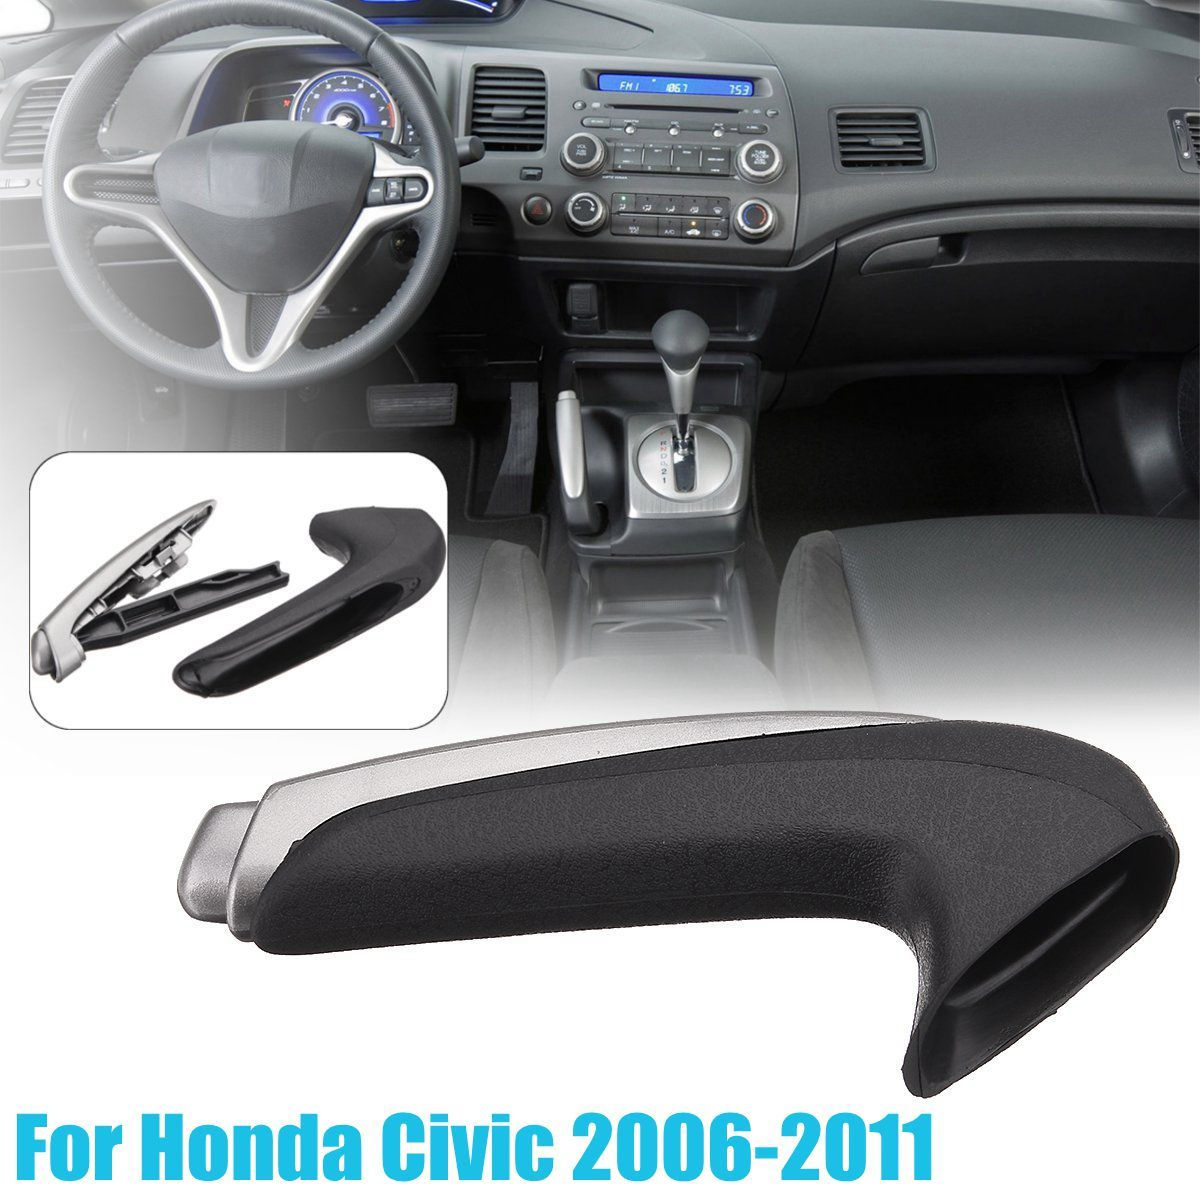 Handle Cover Emergency Car Interior Parking Hand Brake Handle Lever Grip Cover For Honda for Civic 2006-2011